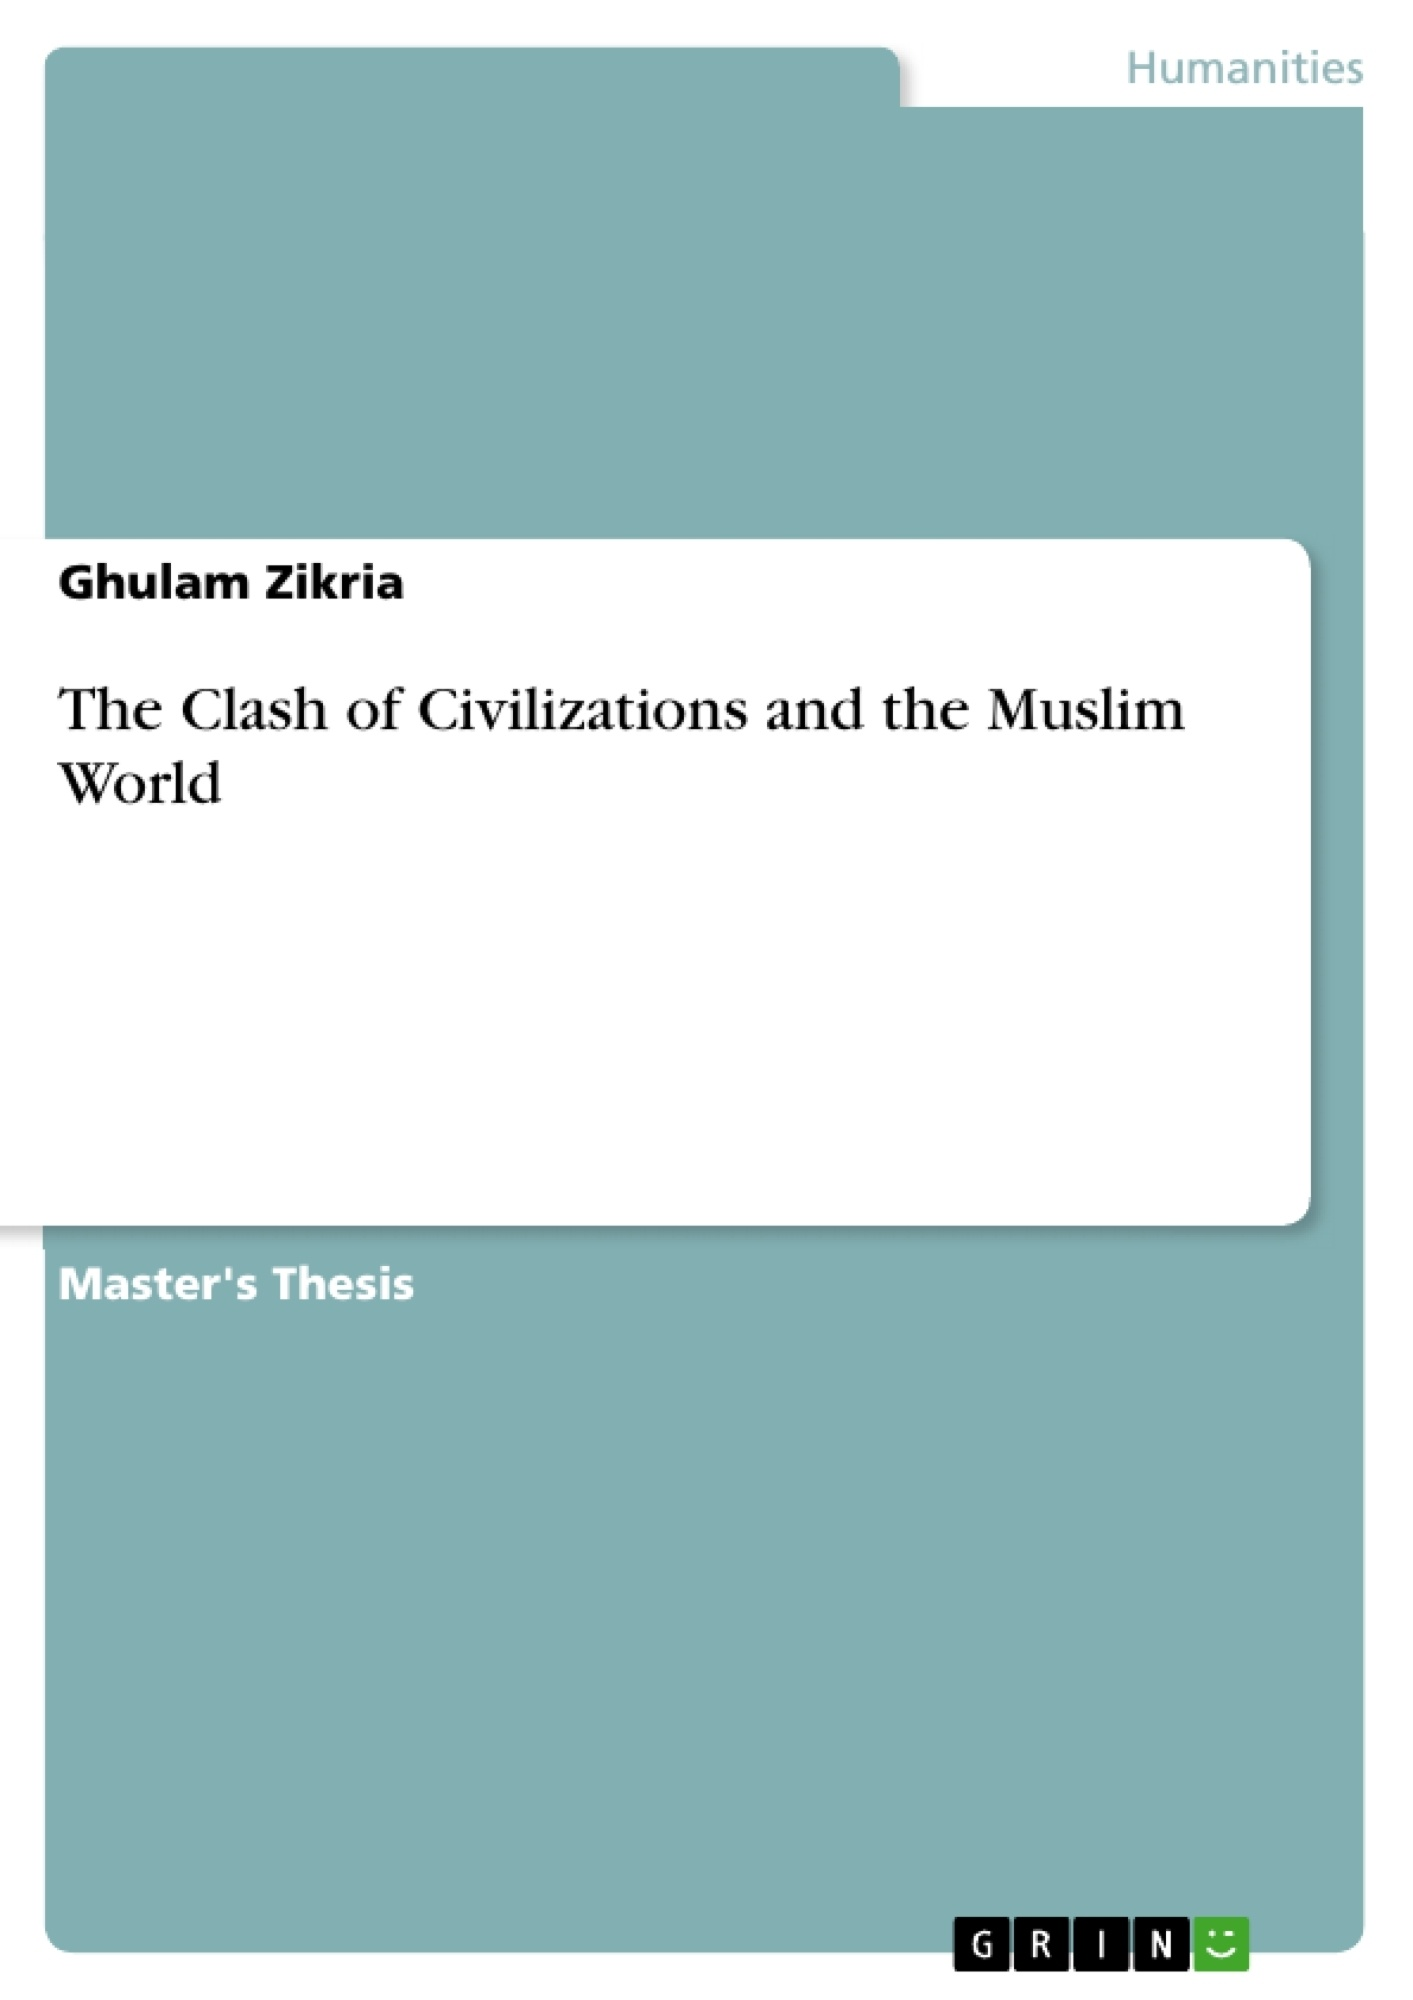 Title: The Clash of Civilizations and the Muslim World